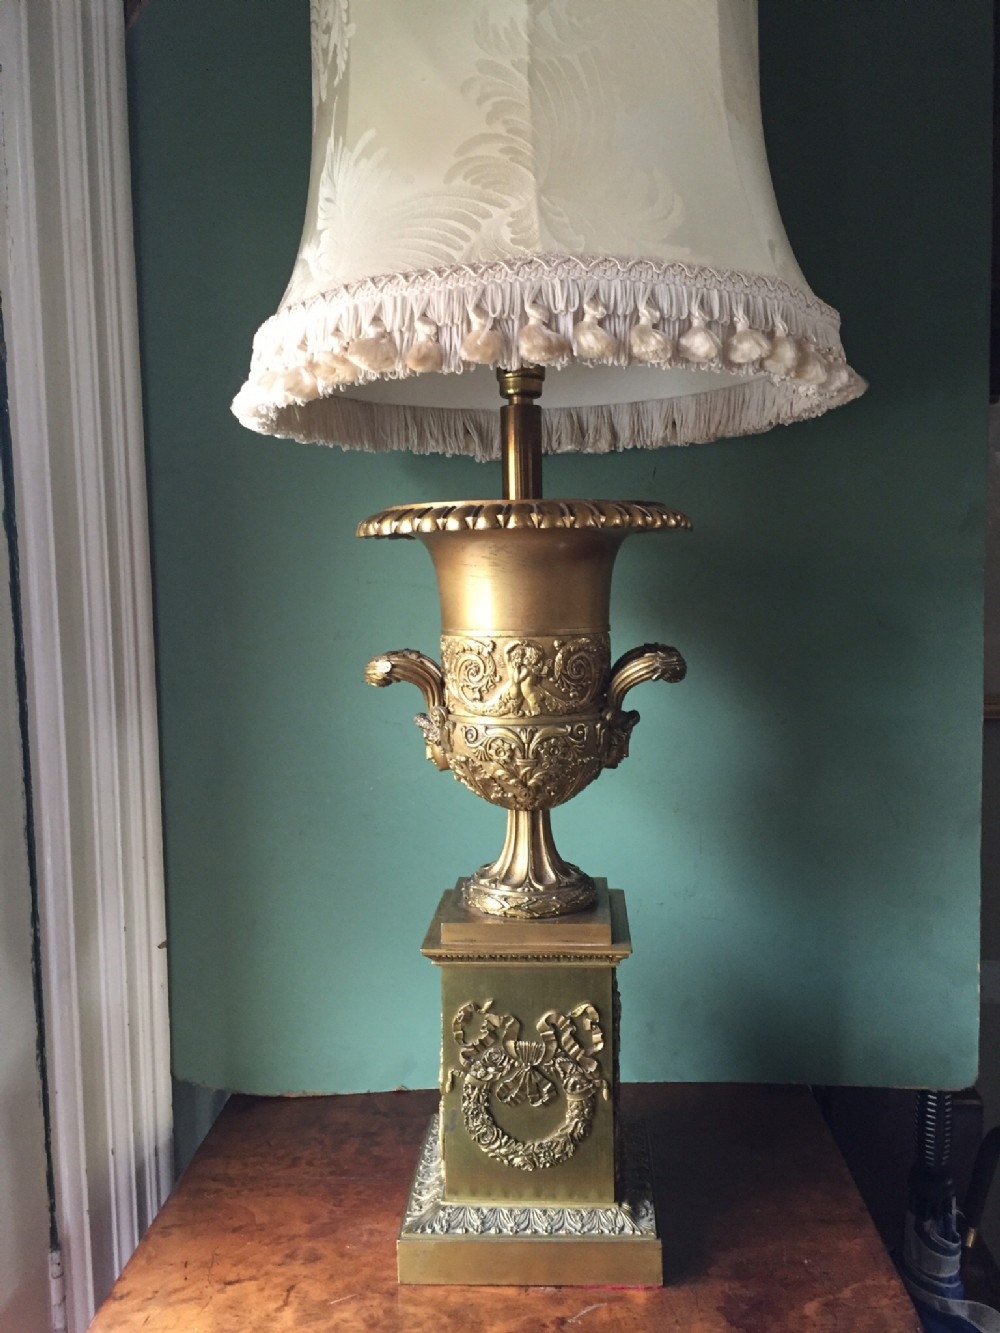 late c19th gilded ormolubronze empire style tablelamp